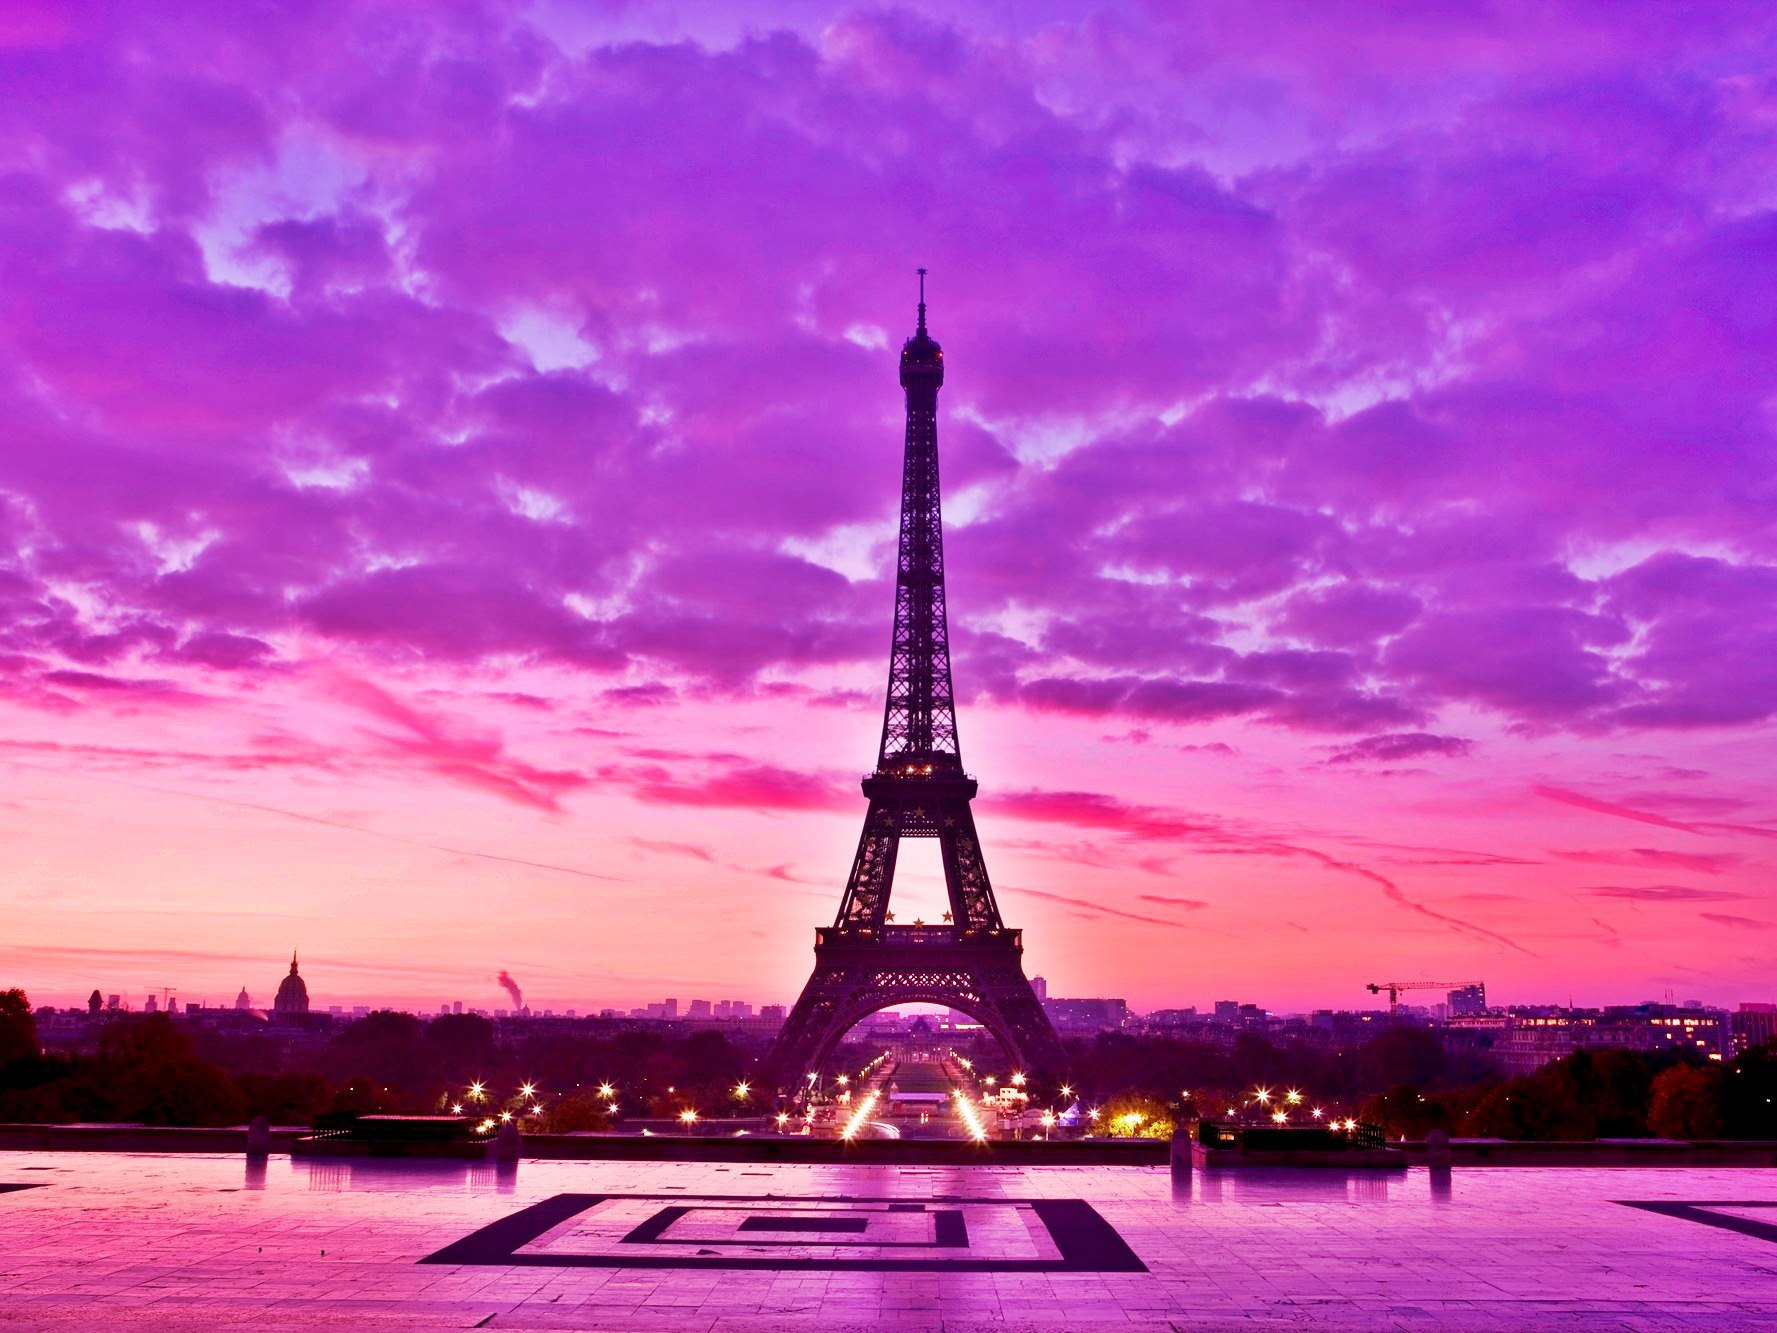 Eiffel Tower Wallpaper Pink